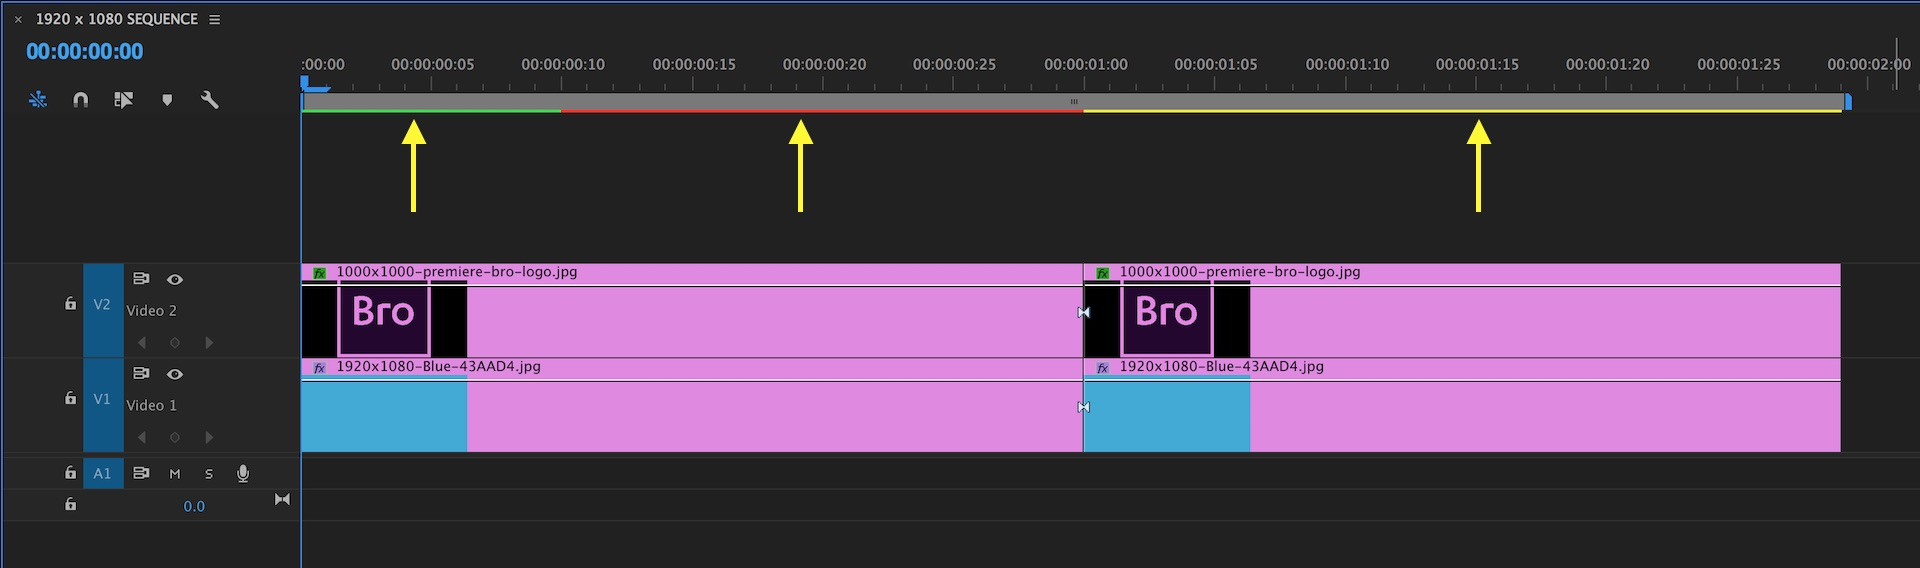 The render bar color indicates when preview files are available or need to be rendered